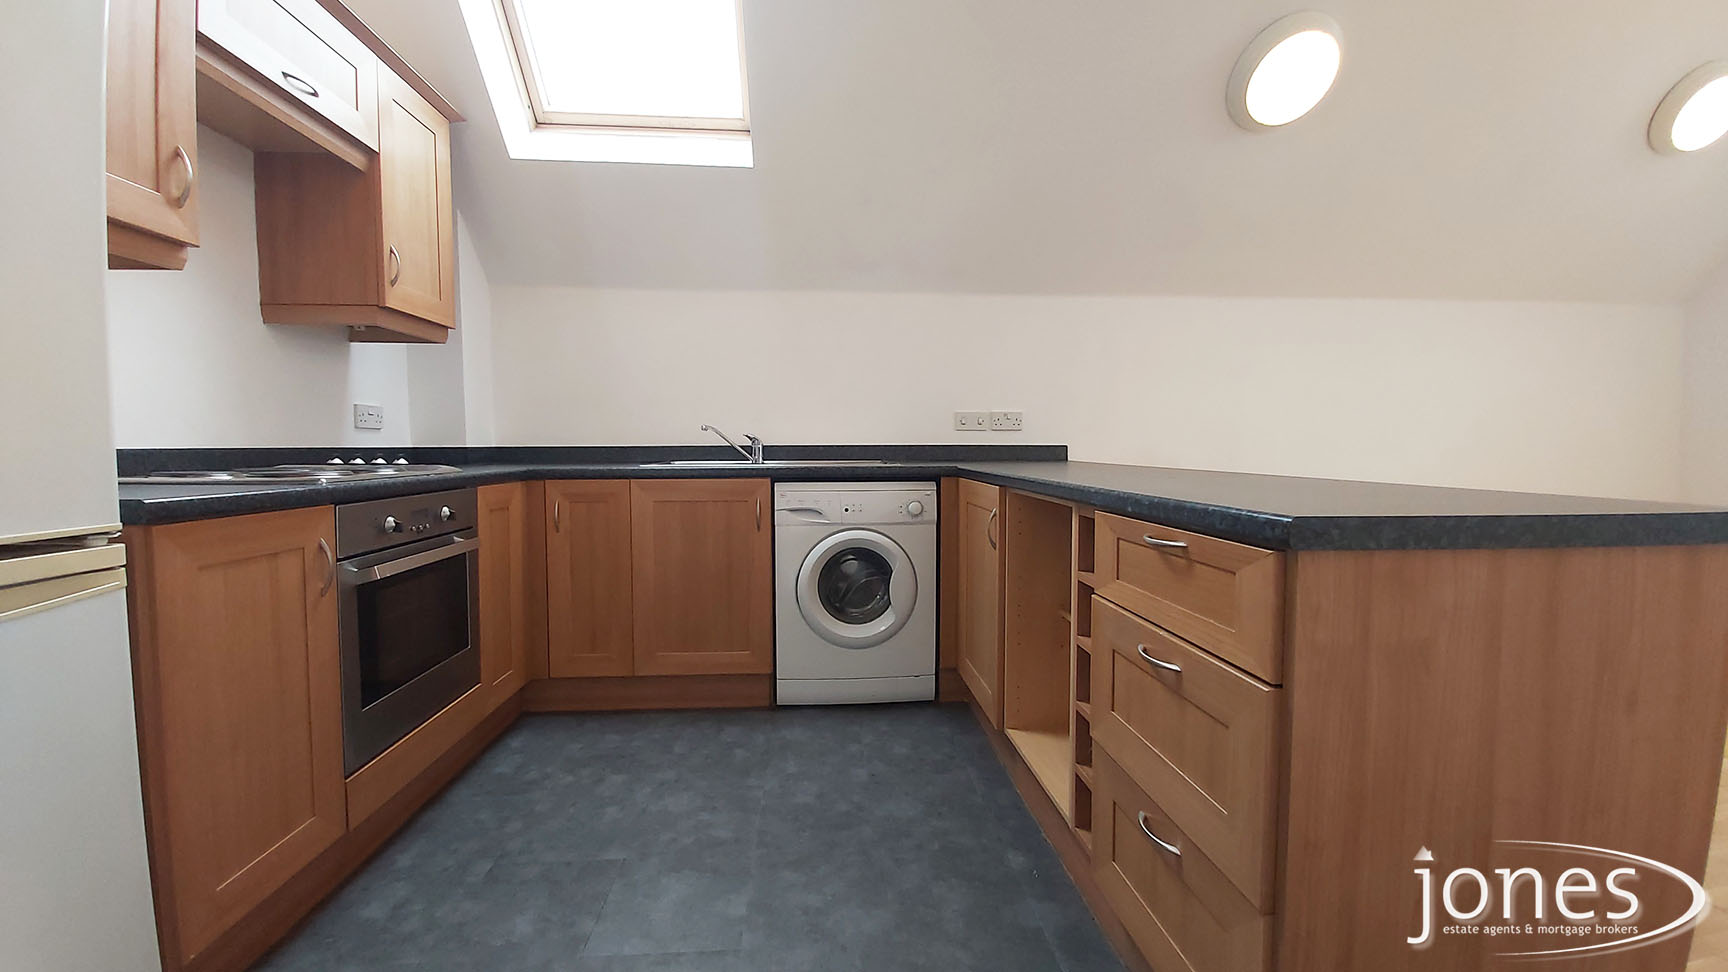 Home for Sale Let - Photo 04 Willow Sage Court, Stockton on Tees, TS18 3UQ